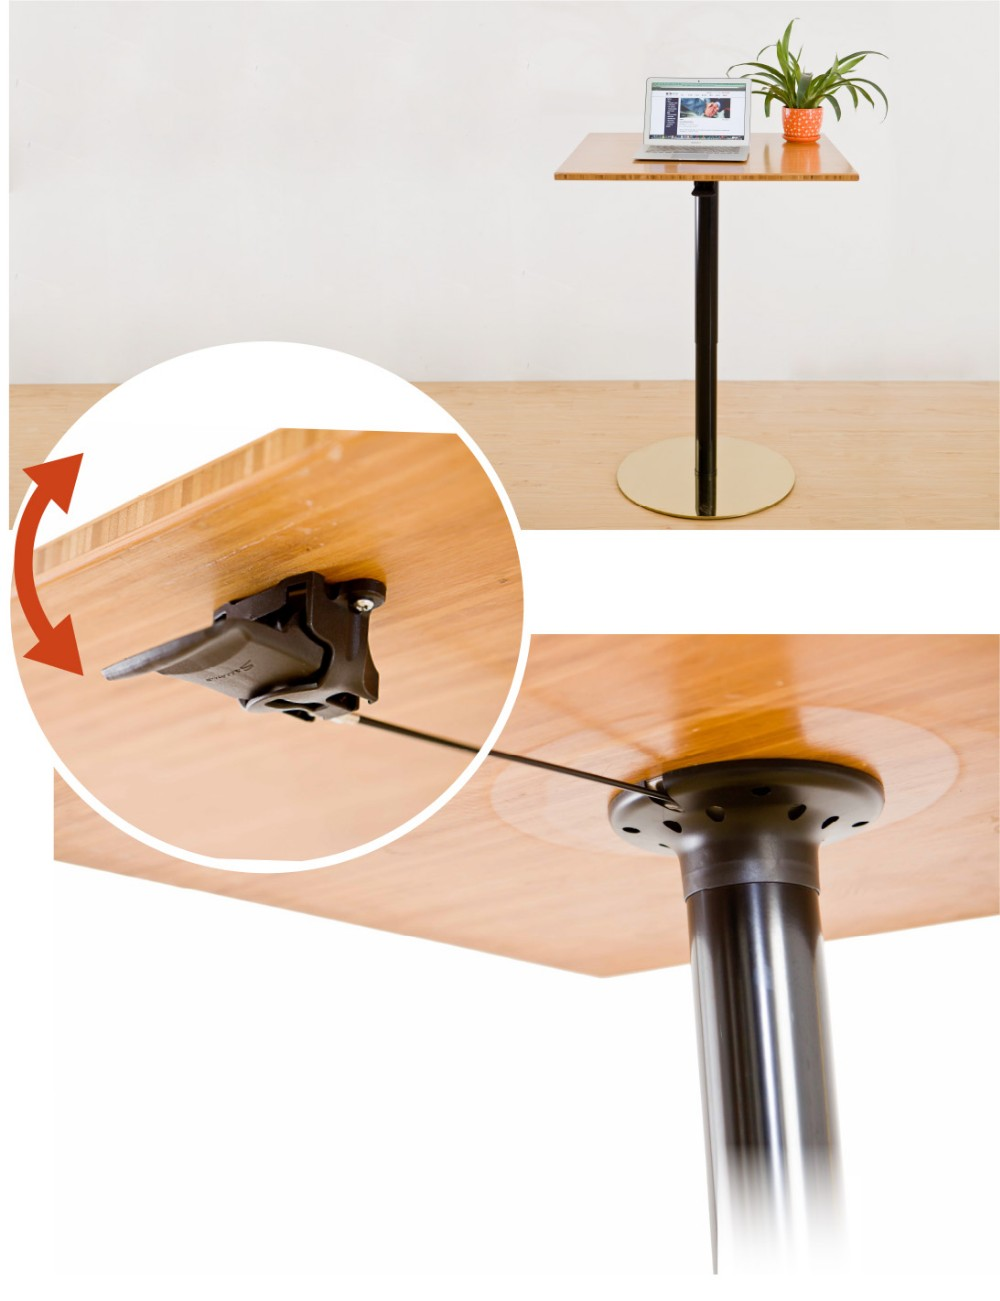 Round Or Square Hydraulic Lift Table Legs For Coffee Table Buy Coffee Table Hydraulic Lift